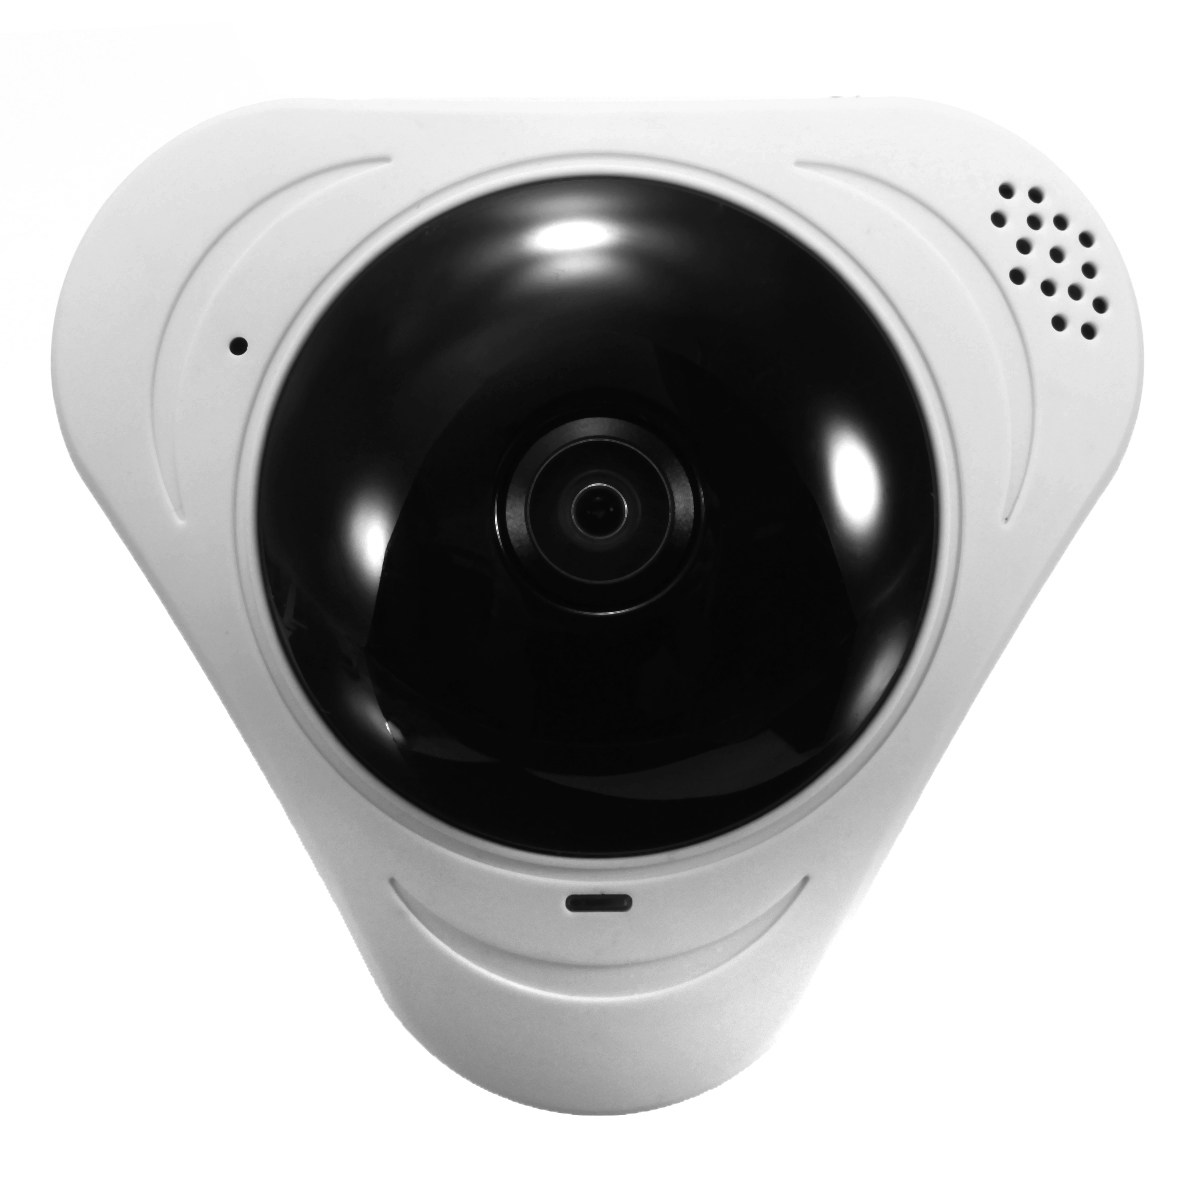 Safurance 3D VR WIFI Camera 360 Degree Panoramic FIsheye 960P WIreless Indoor Home Security Surveillance картридж nv print q7516a для hp lj 5200 5200dtn 5200l 5200tn 5200n 5200lx